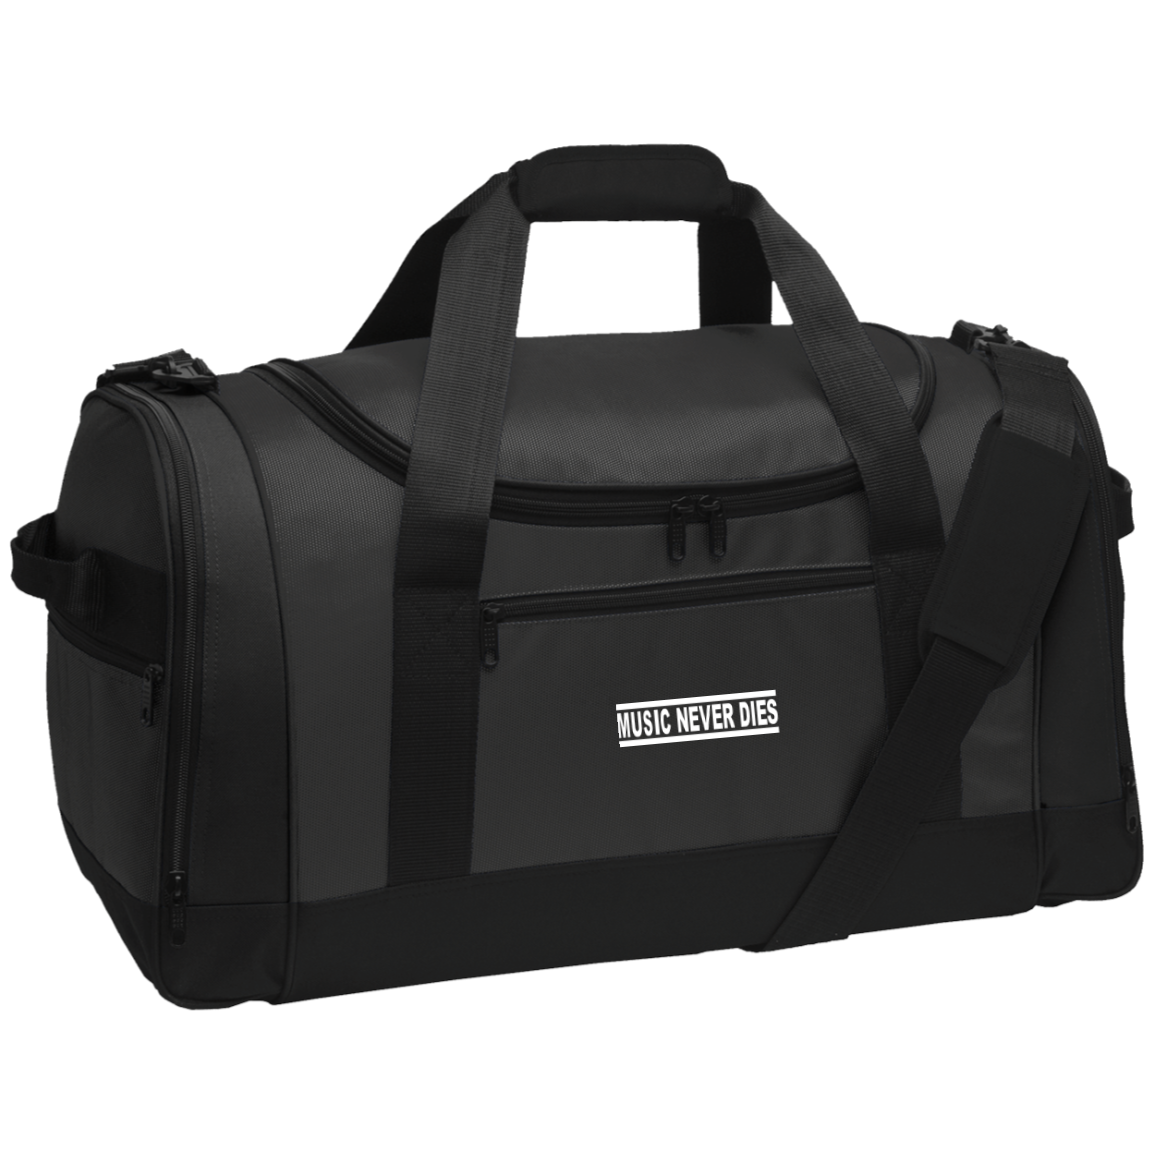 Port Authority Music Never Dies Travel Sports Duffel